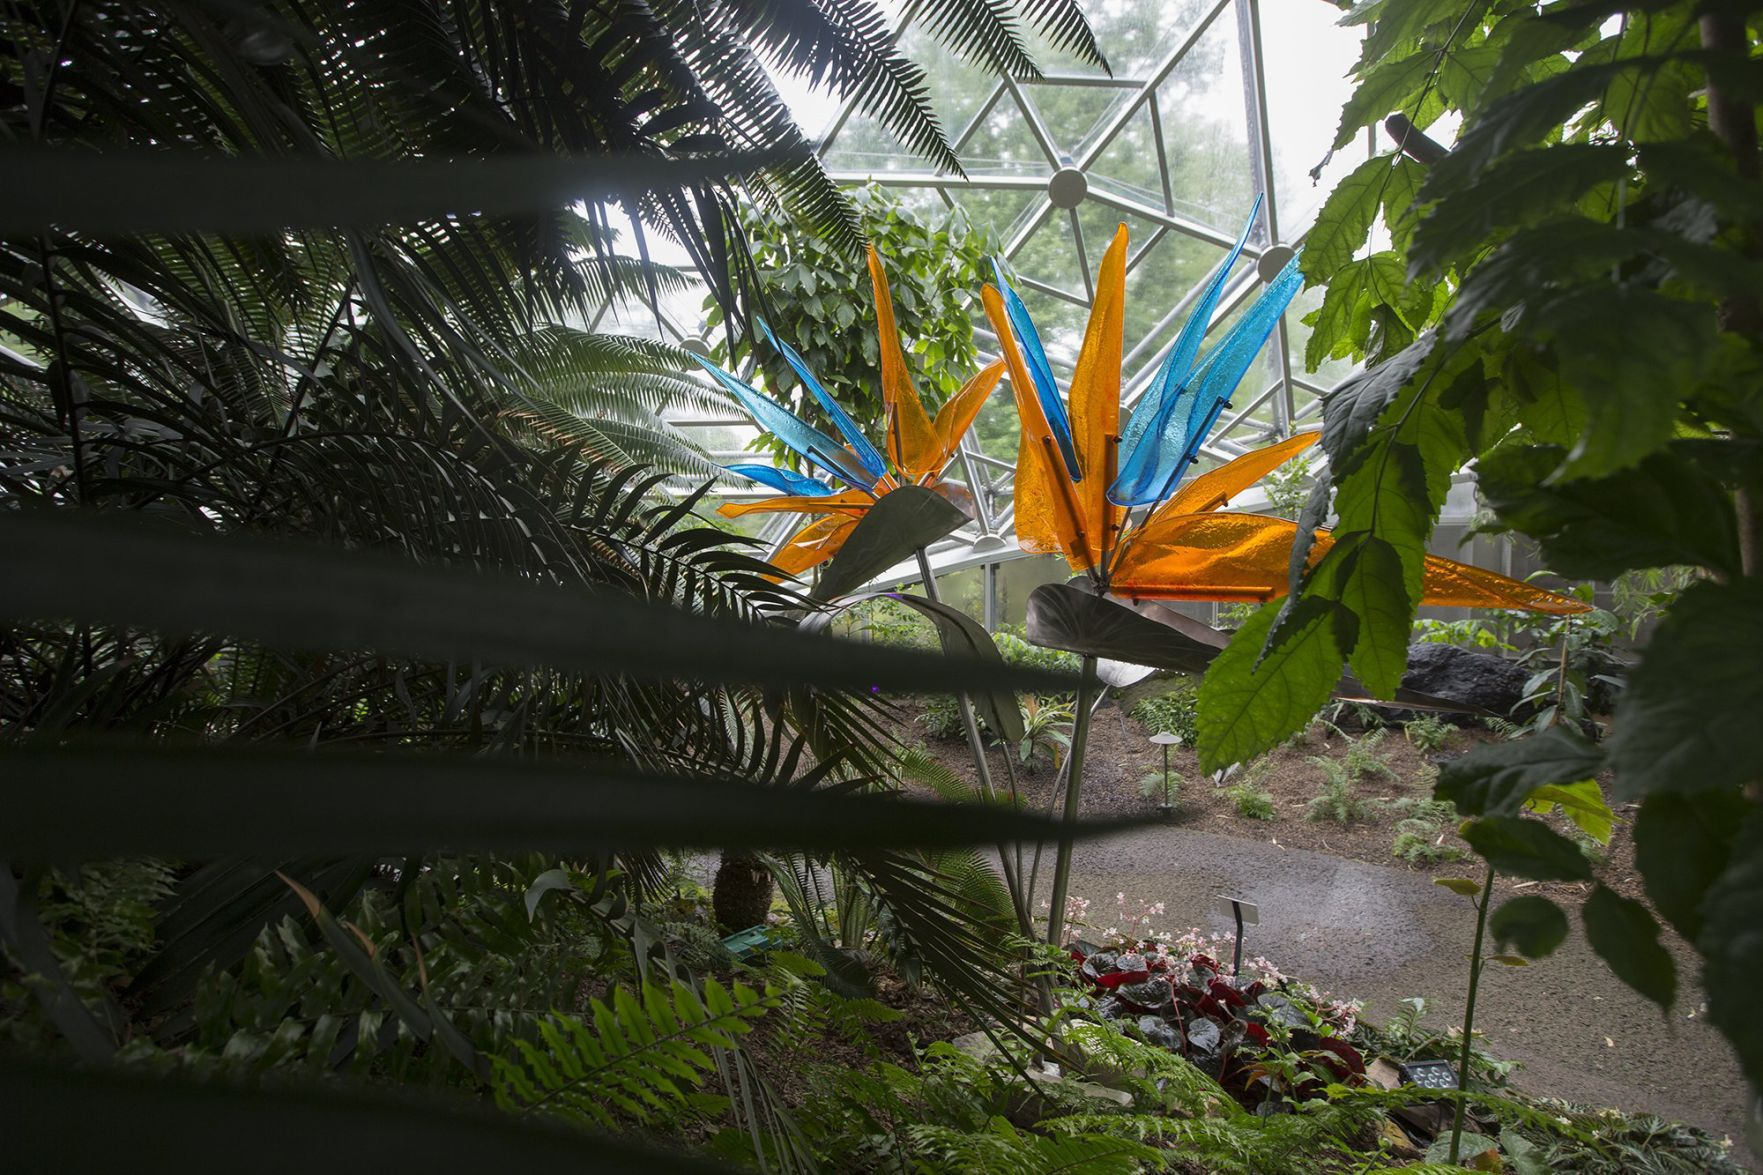 Marvelous Glass Exhibit Opens At Missouri Botanical Garden